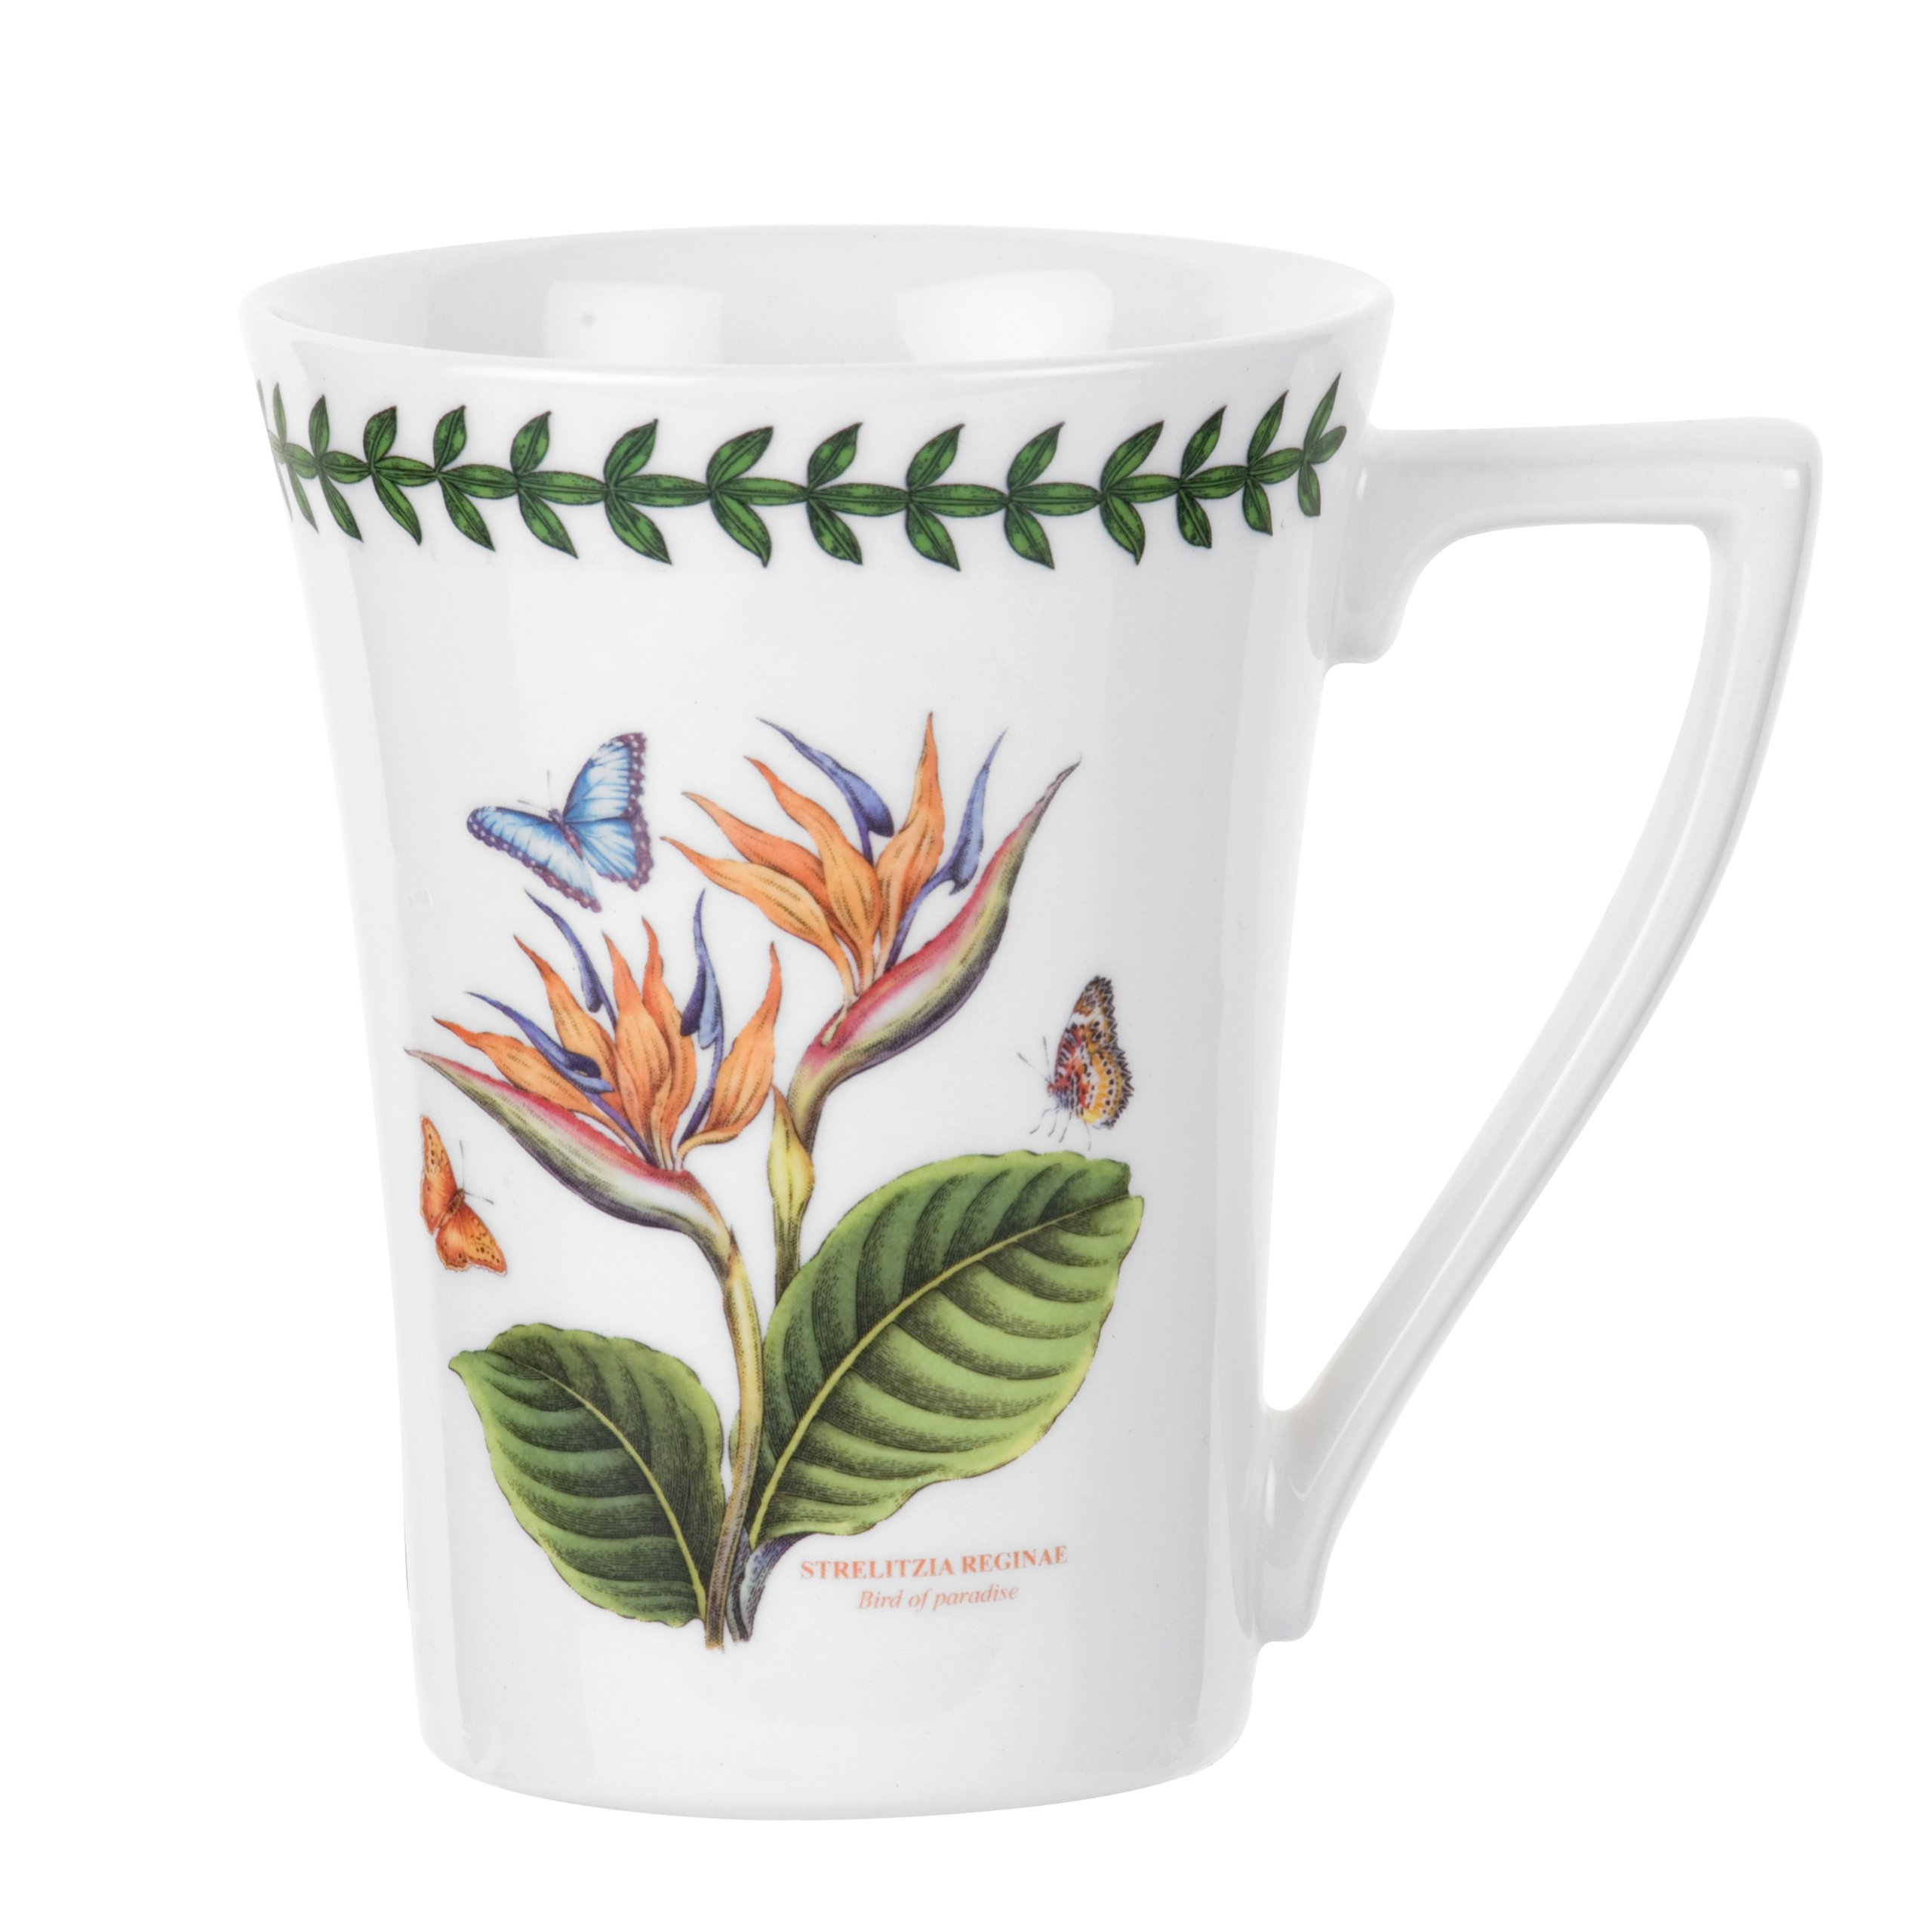 Portmeirion Exotic Botanic Garden Mandarin Mug with Bird of Paradise Motif, Set of 6 by Portmeirion